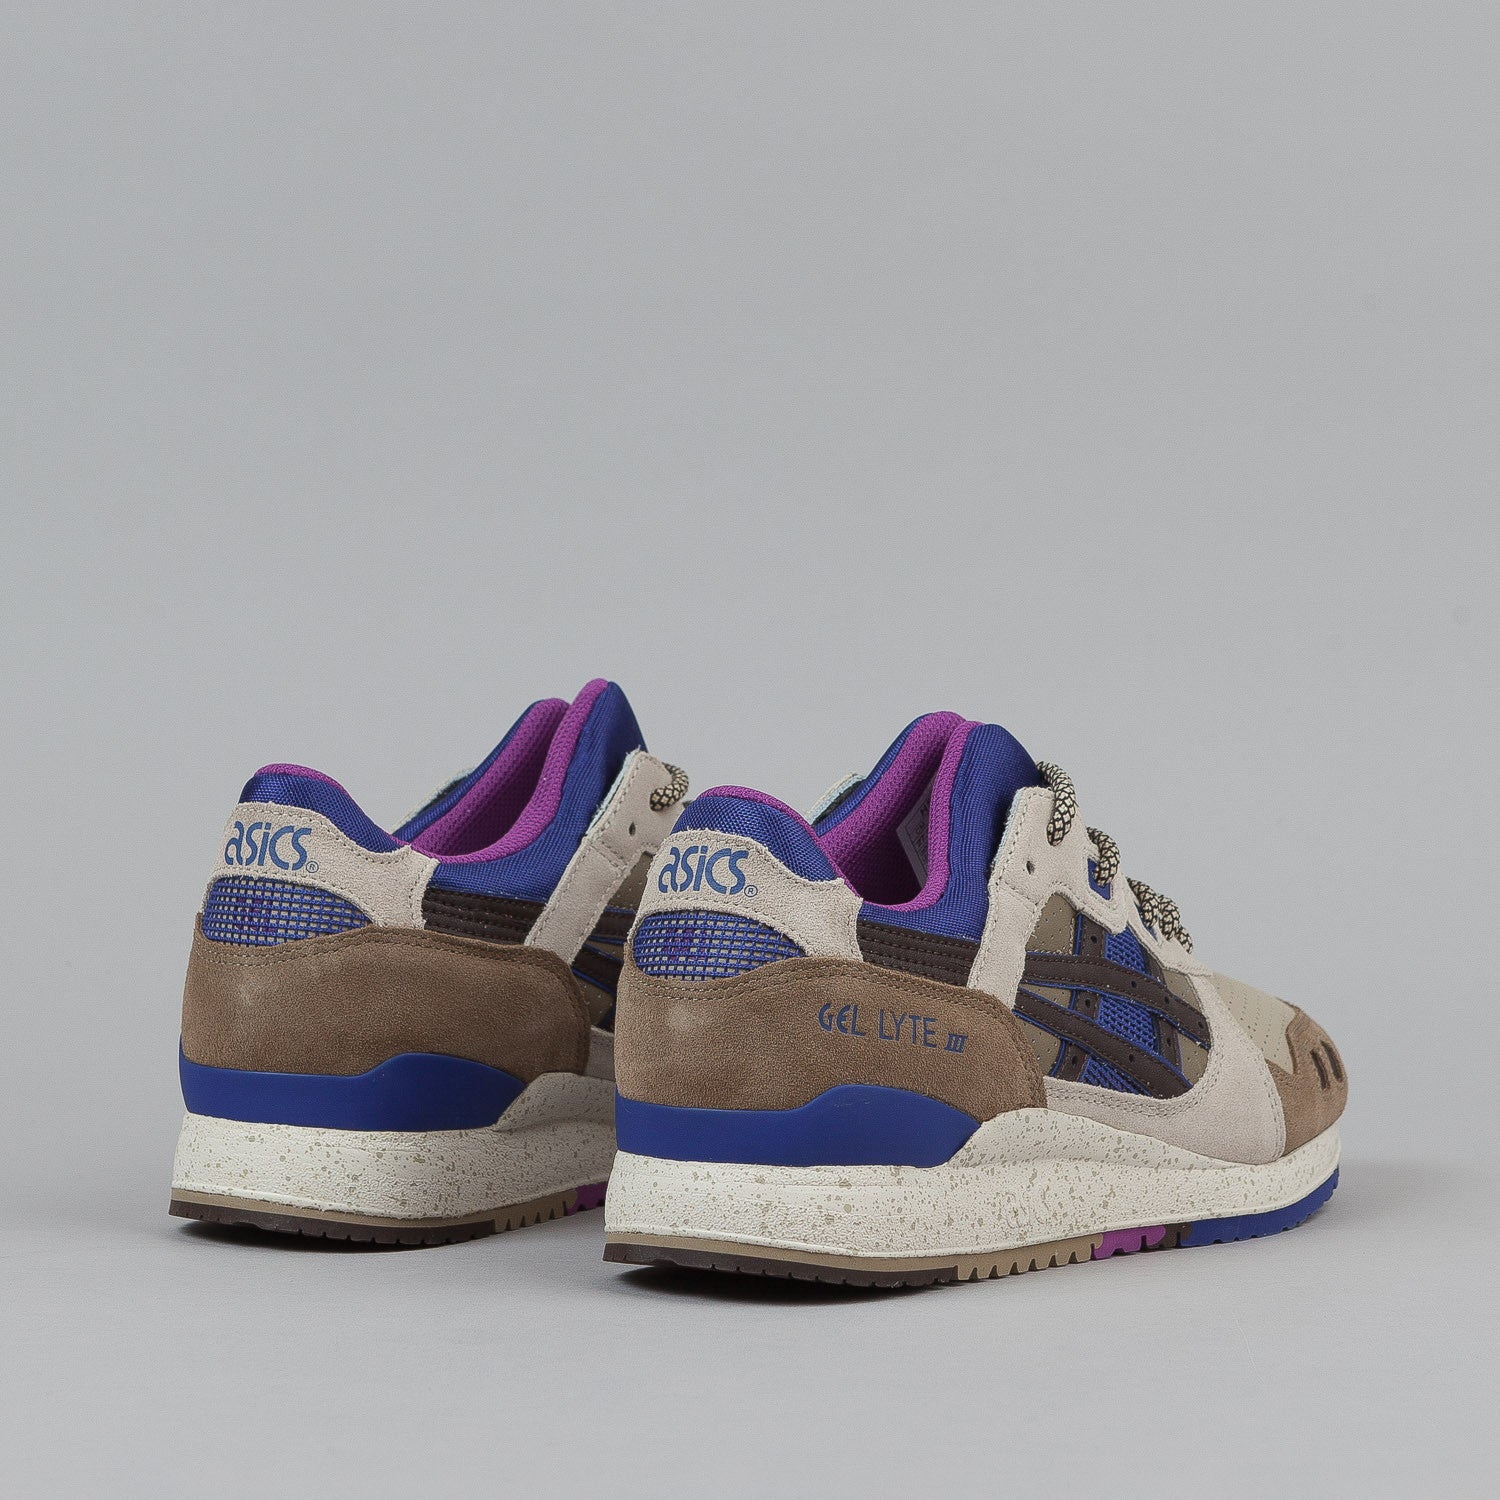 Asics Gel Lyte III Shoes 'Outdoor' - Light Brown / Dark Brown